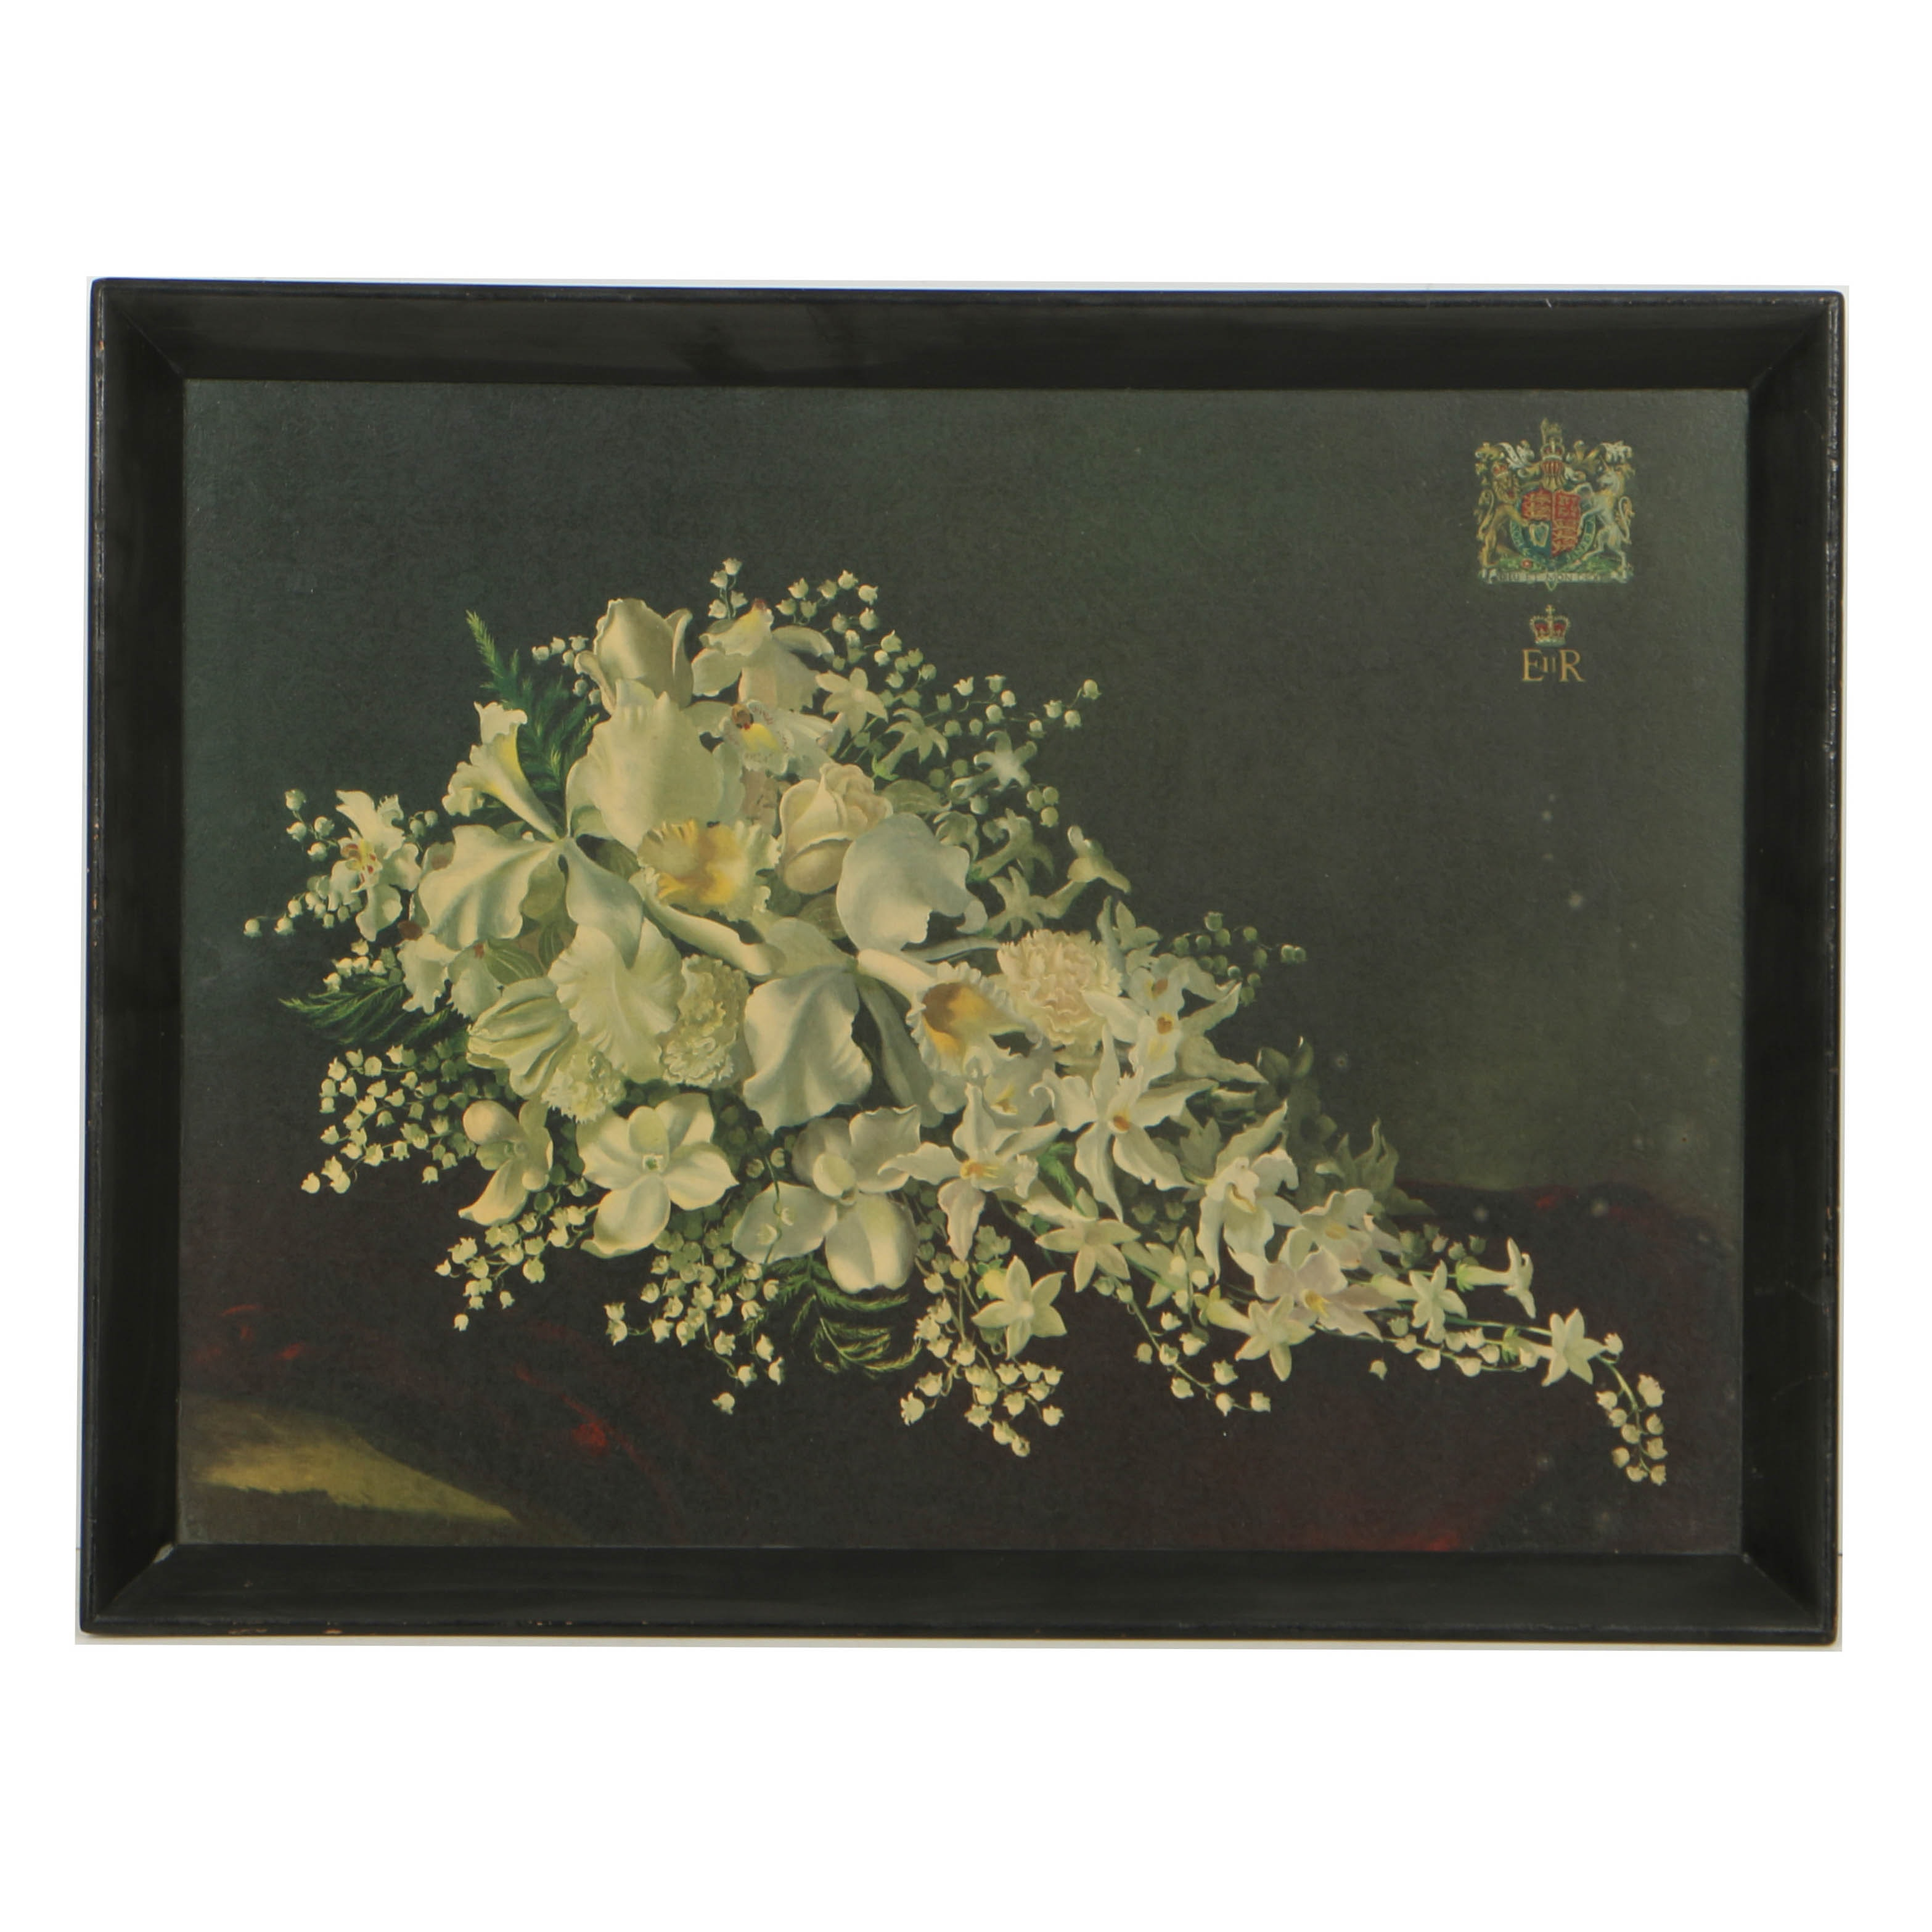 British Chromolithograph on Paper of Queen Elizabeth II Bridal Bouquet